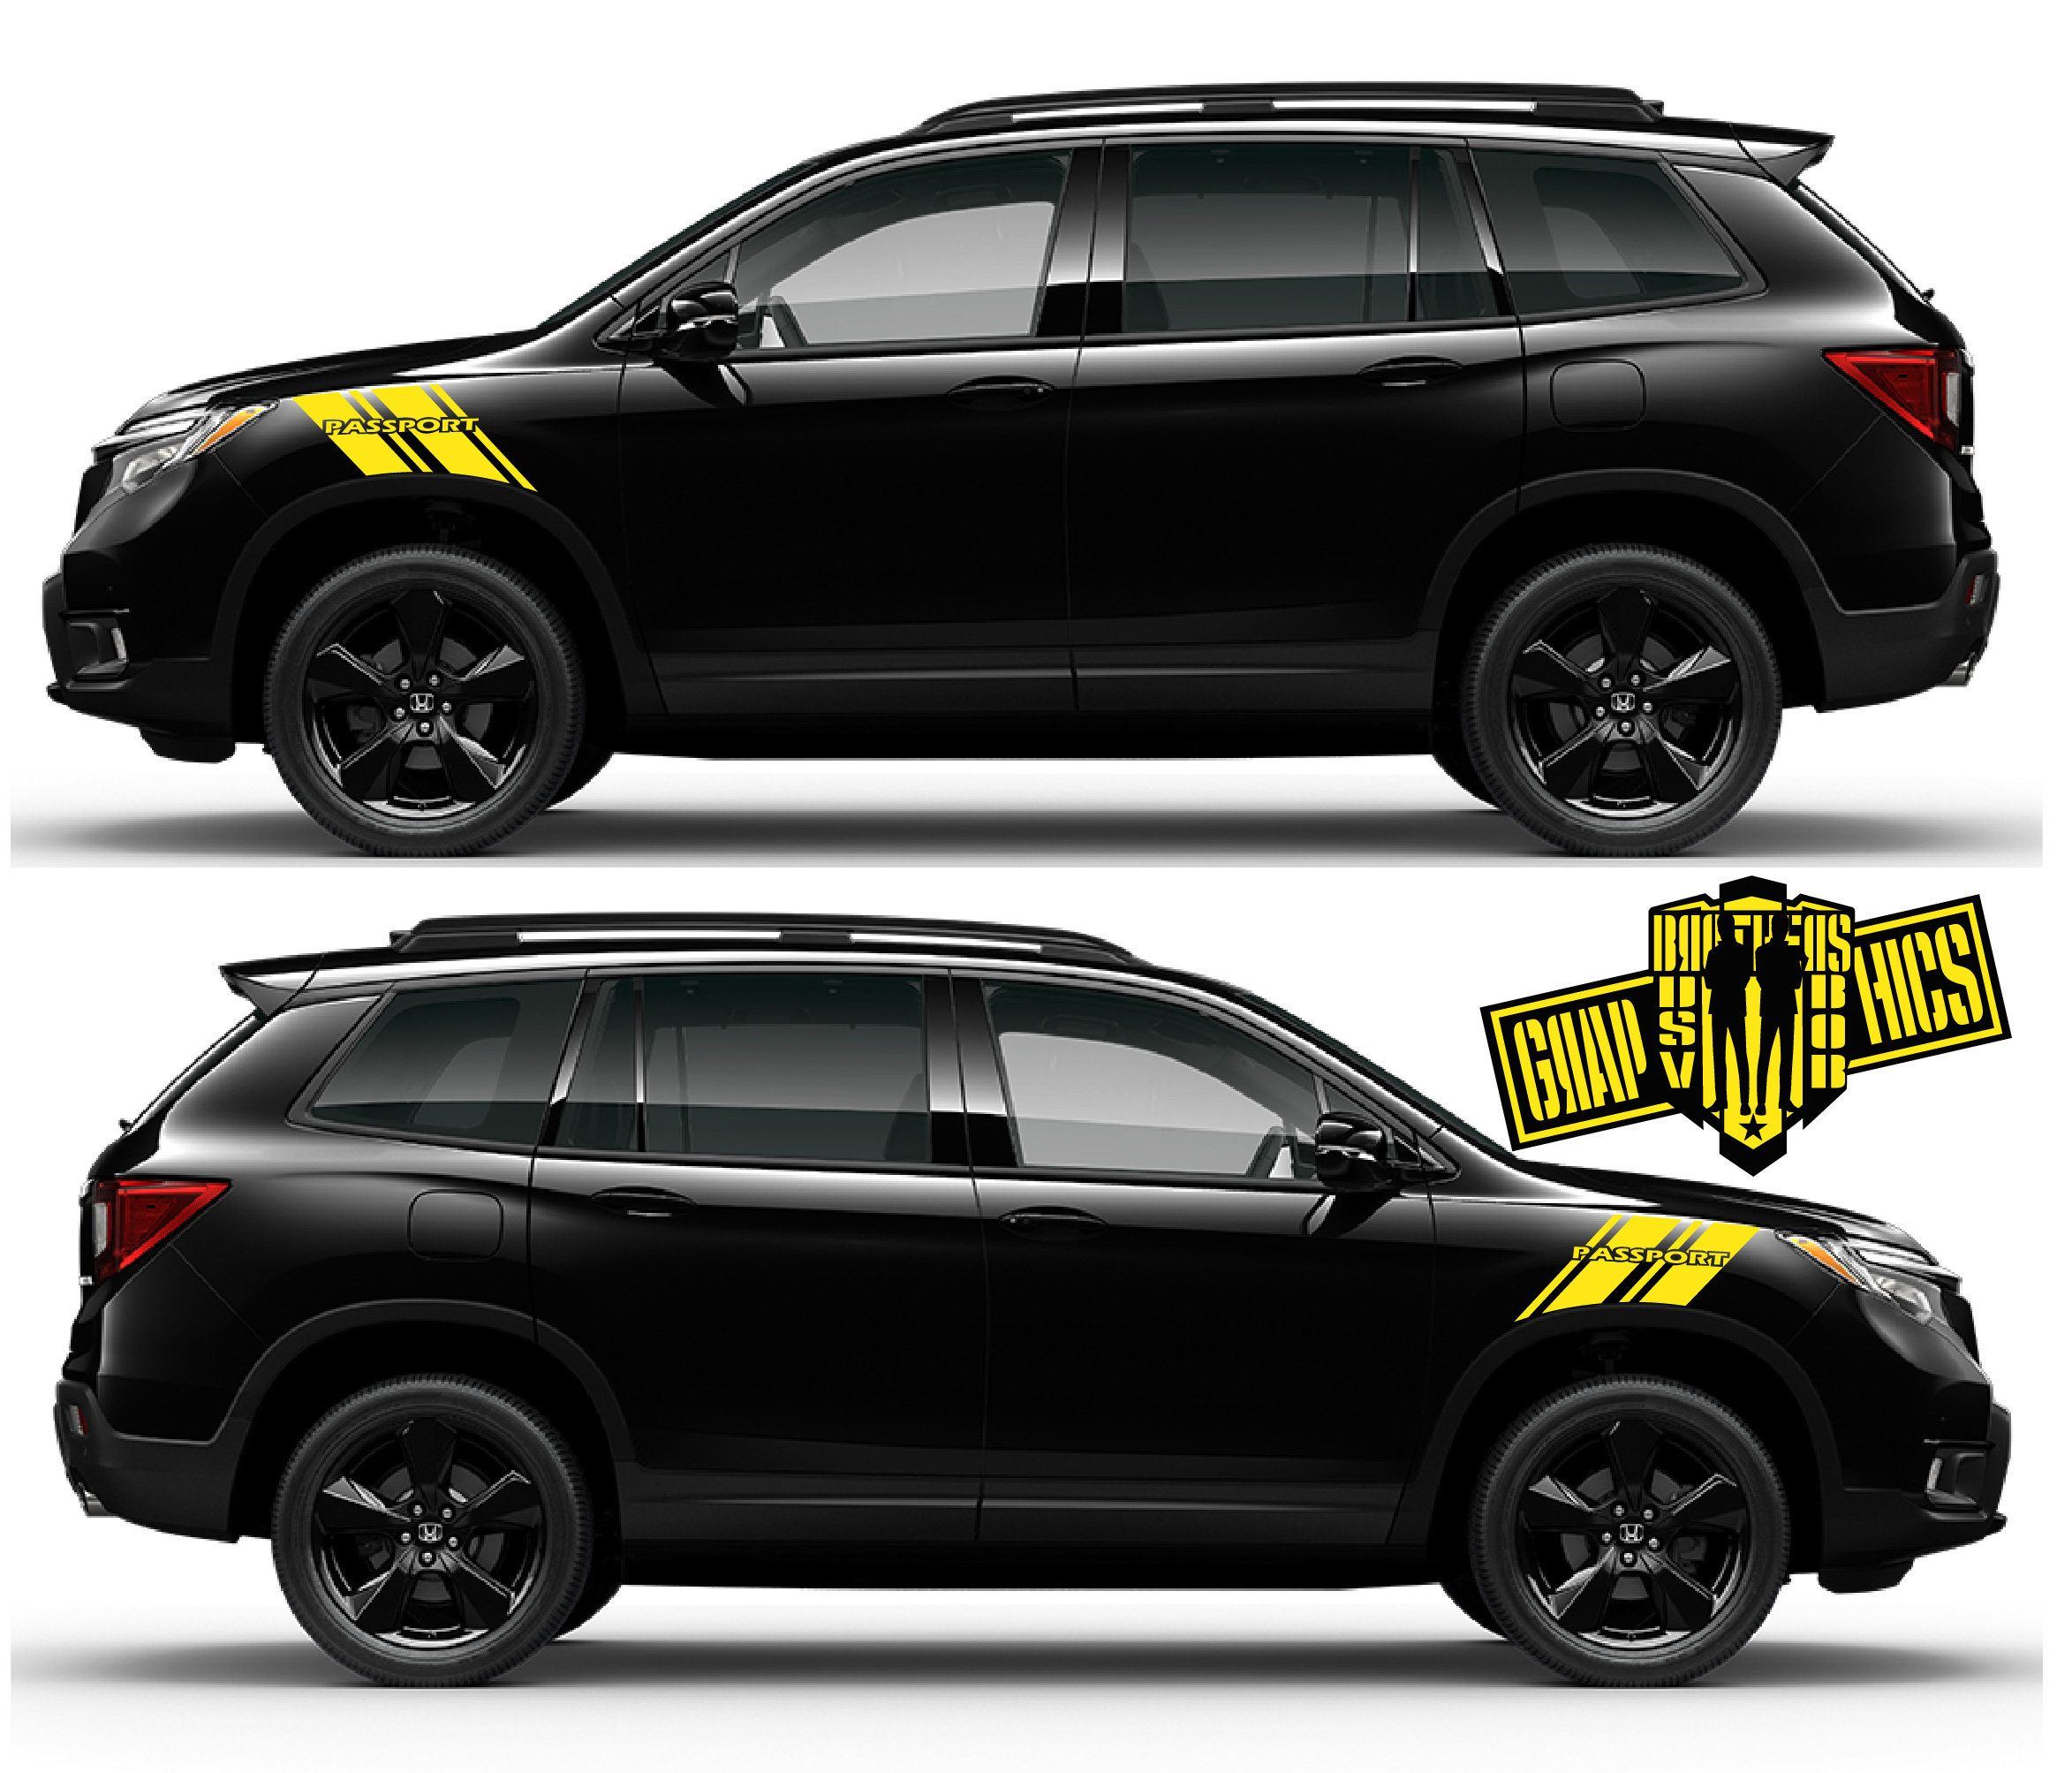 Sports Sticker Decal Side Door Stripes For Honda Passport Etsy In 2020 Honda Passport Racing Stickers Racing Stripes